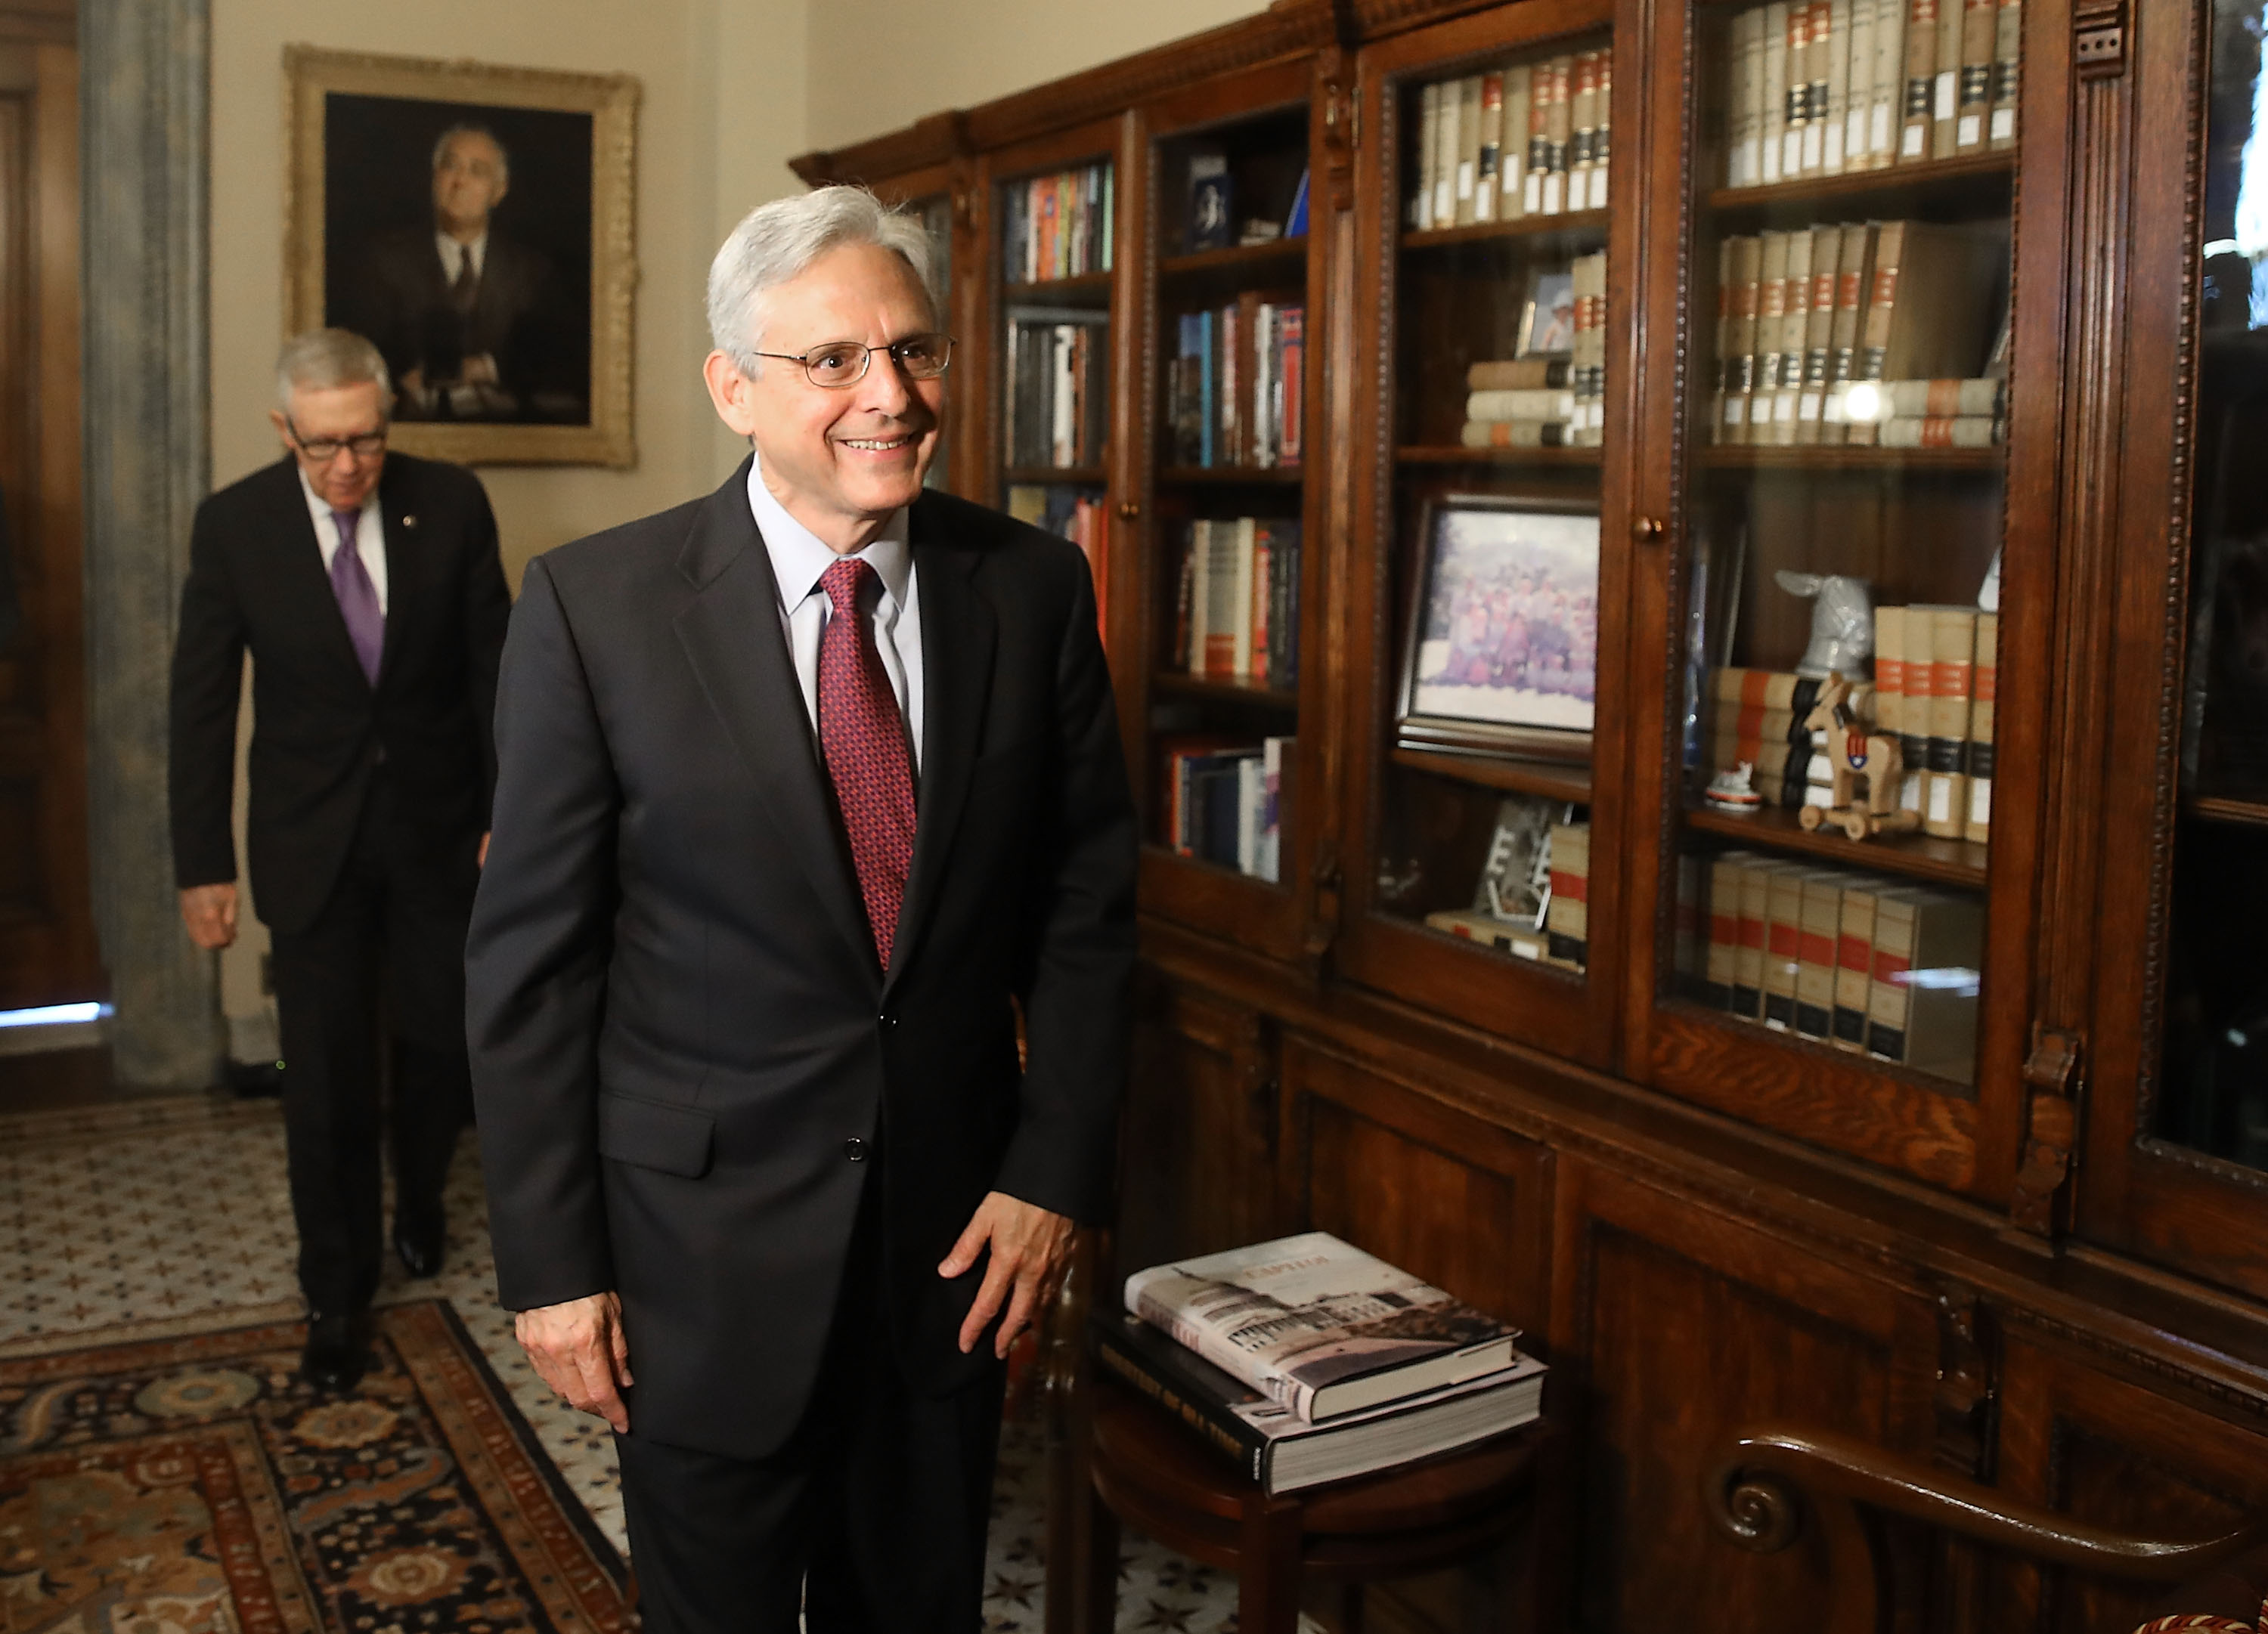 Supreme Court nominee Merrick Garland, (R), meets with Senate Minority Leader Harry Reid (D-NV), on Capitol Hill September 14, 2016 in Washington, DC. Senate Majority Leader Mitch McConnell said earlier in the week that the Senate Judiciary Committee will not hold hearings during this session of Congress.